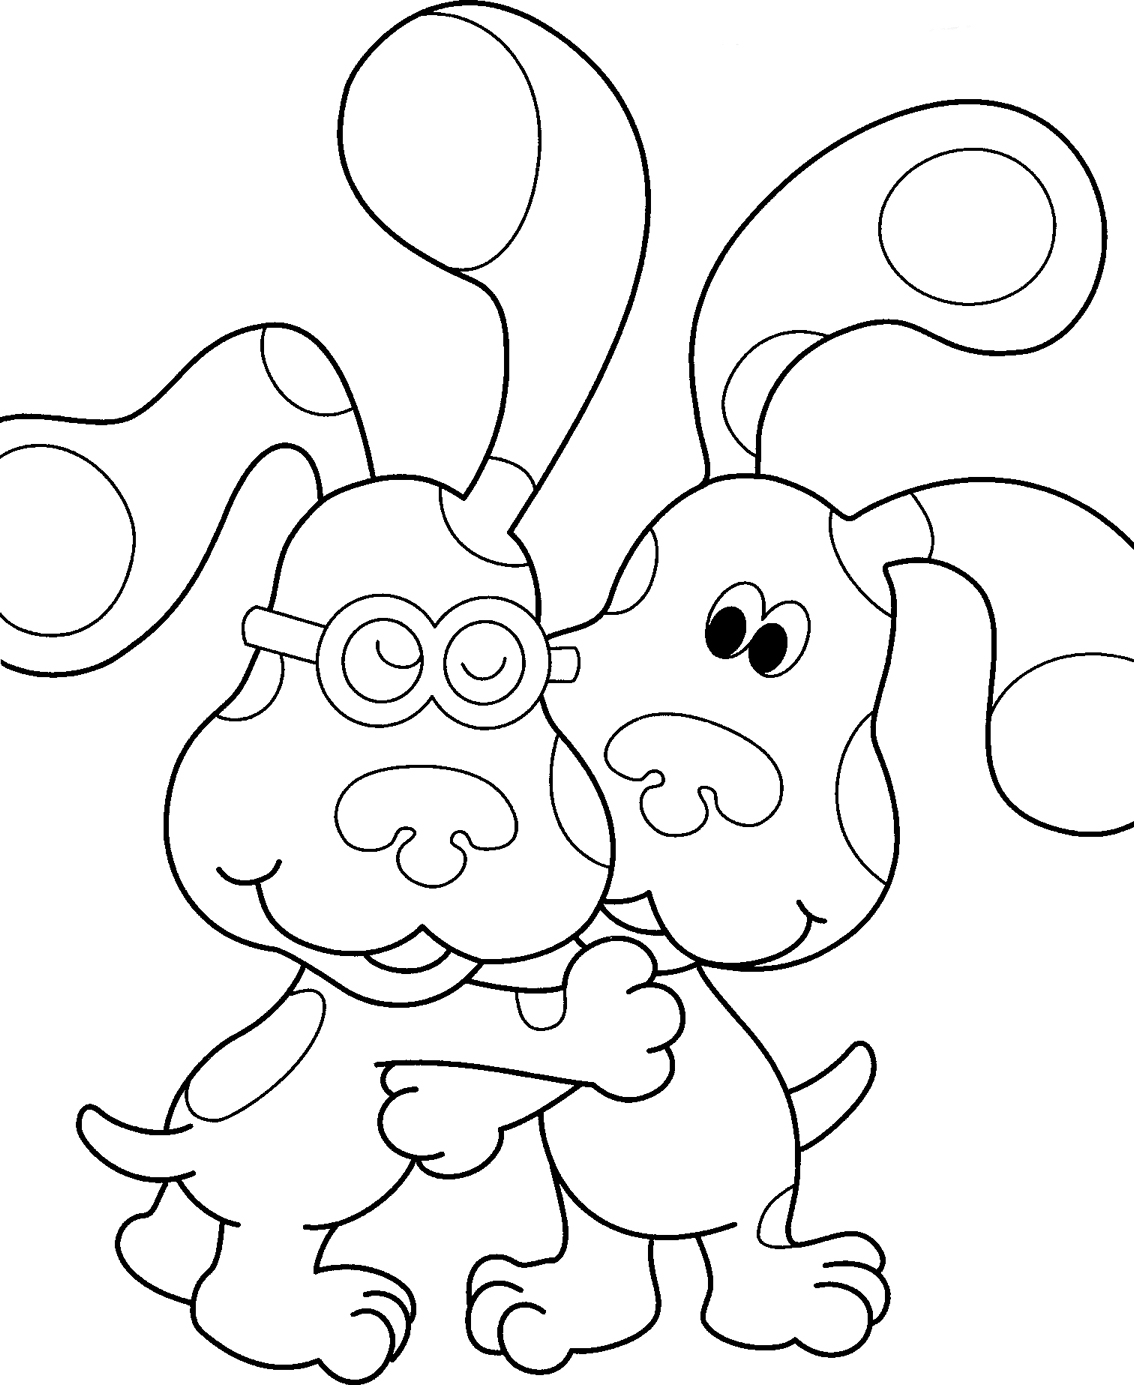 Free Printable Blues Clues Coloring - 333.0KB